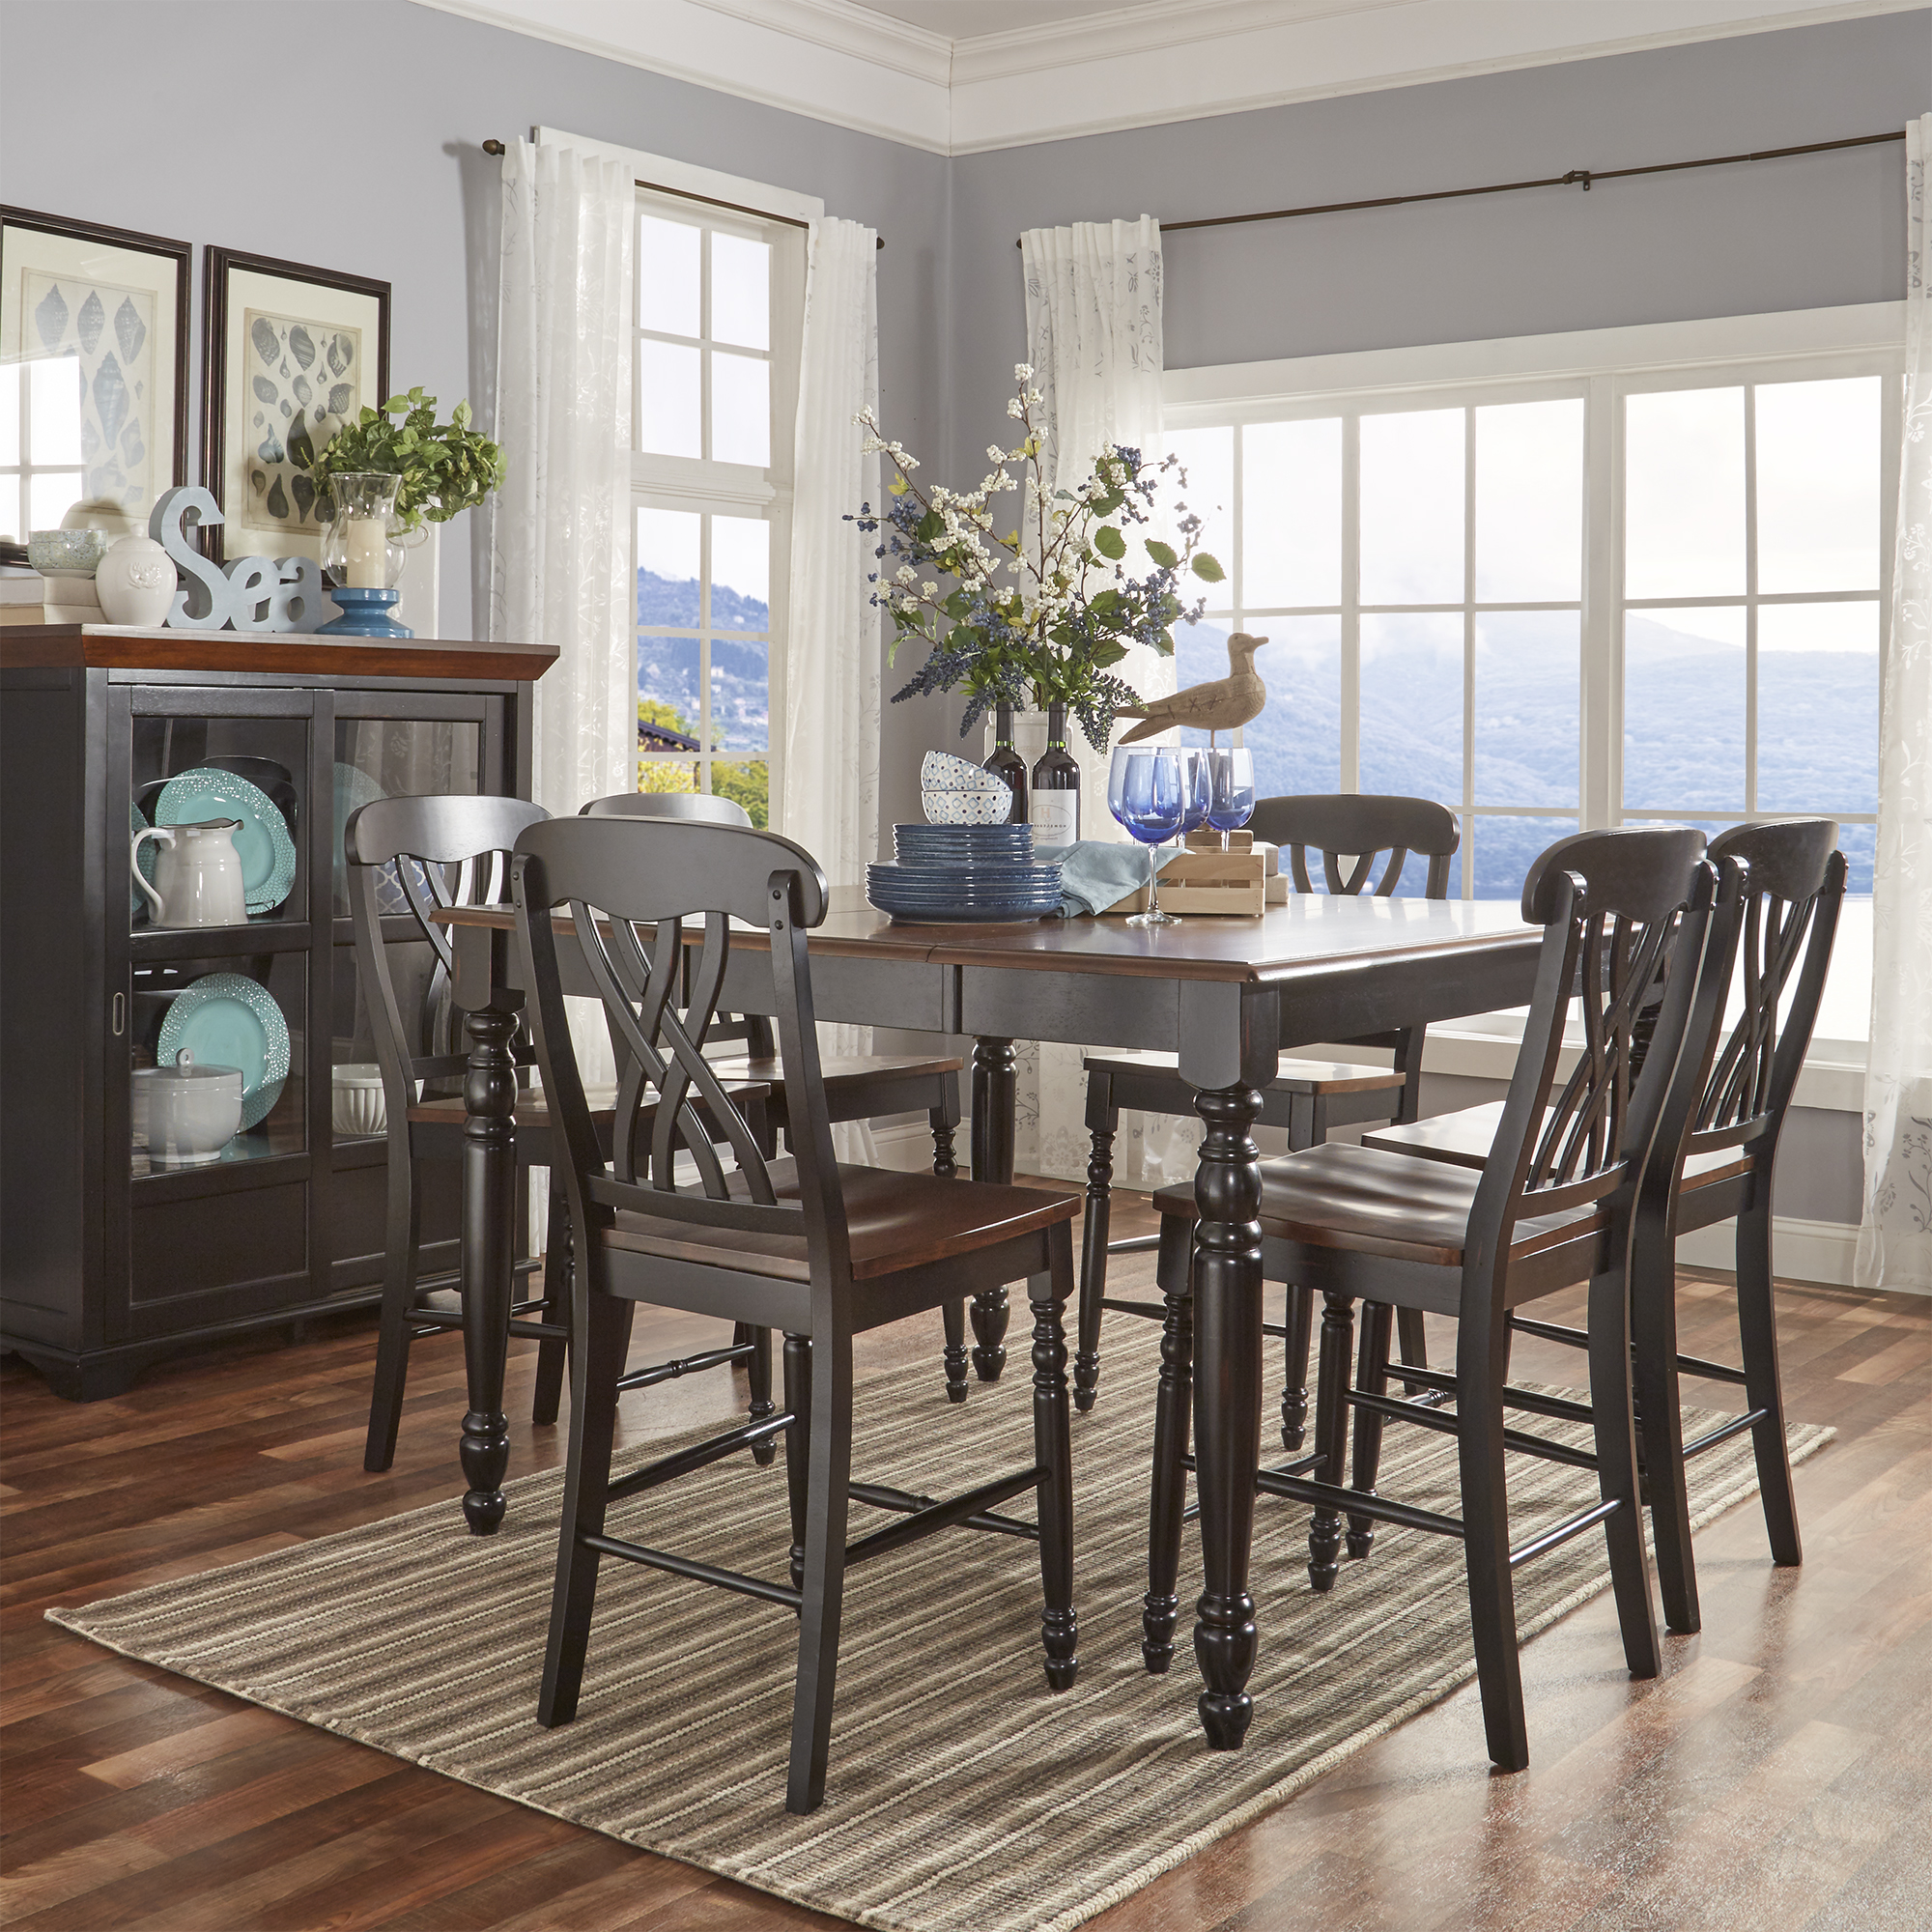 Weston Home Two Tone 7 Piece Counter Height Dining Set, Antique Black